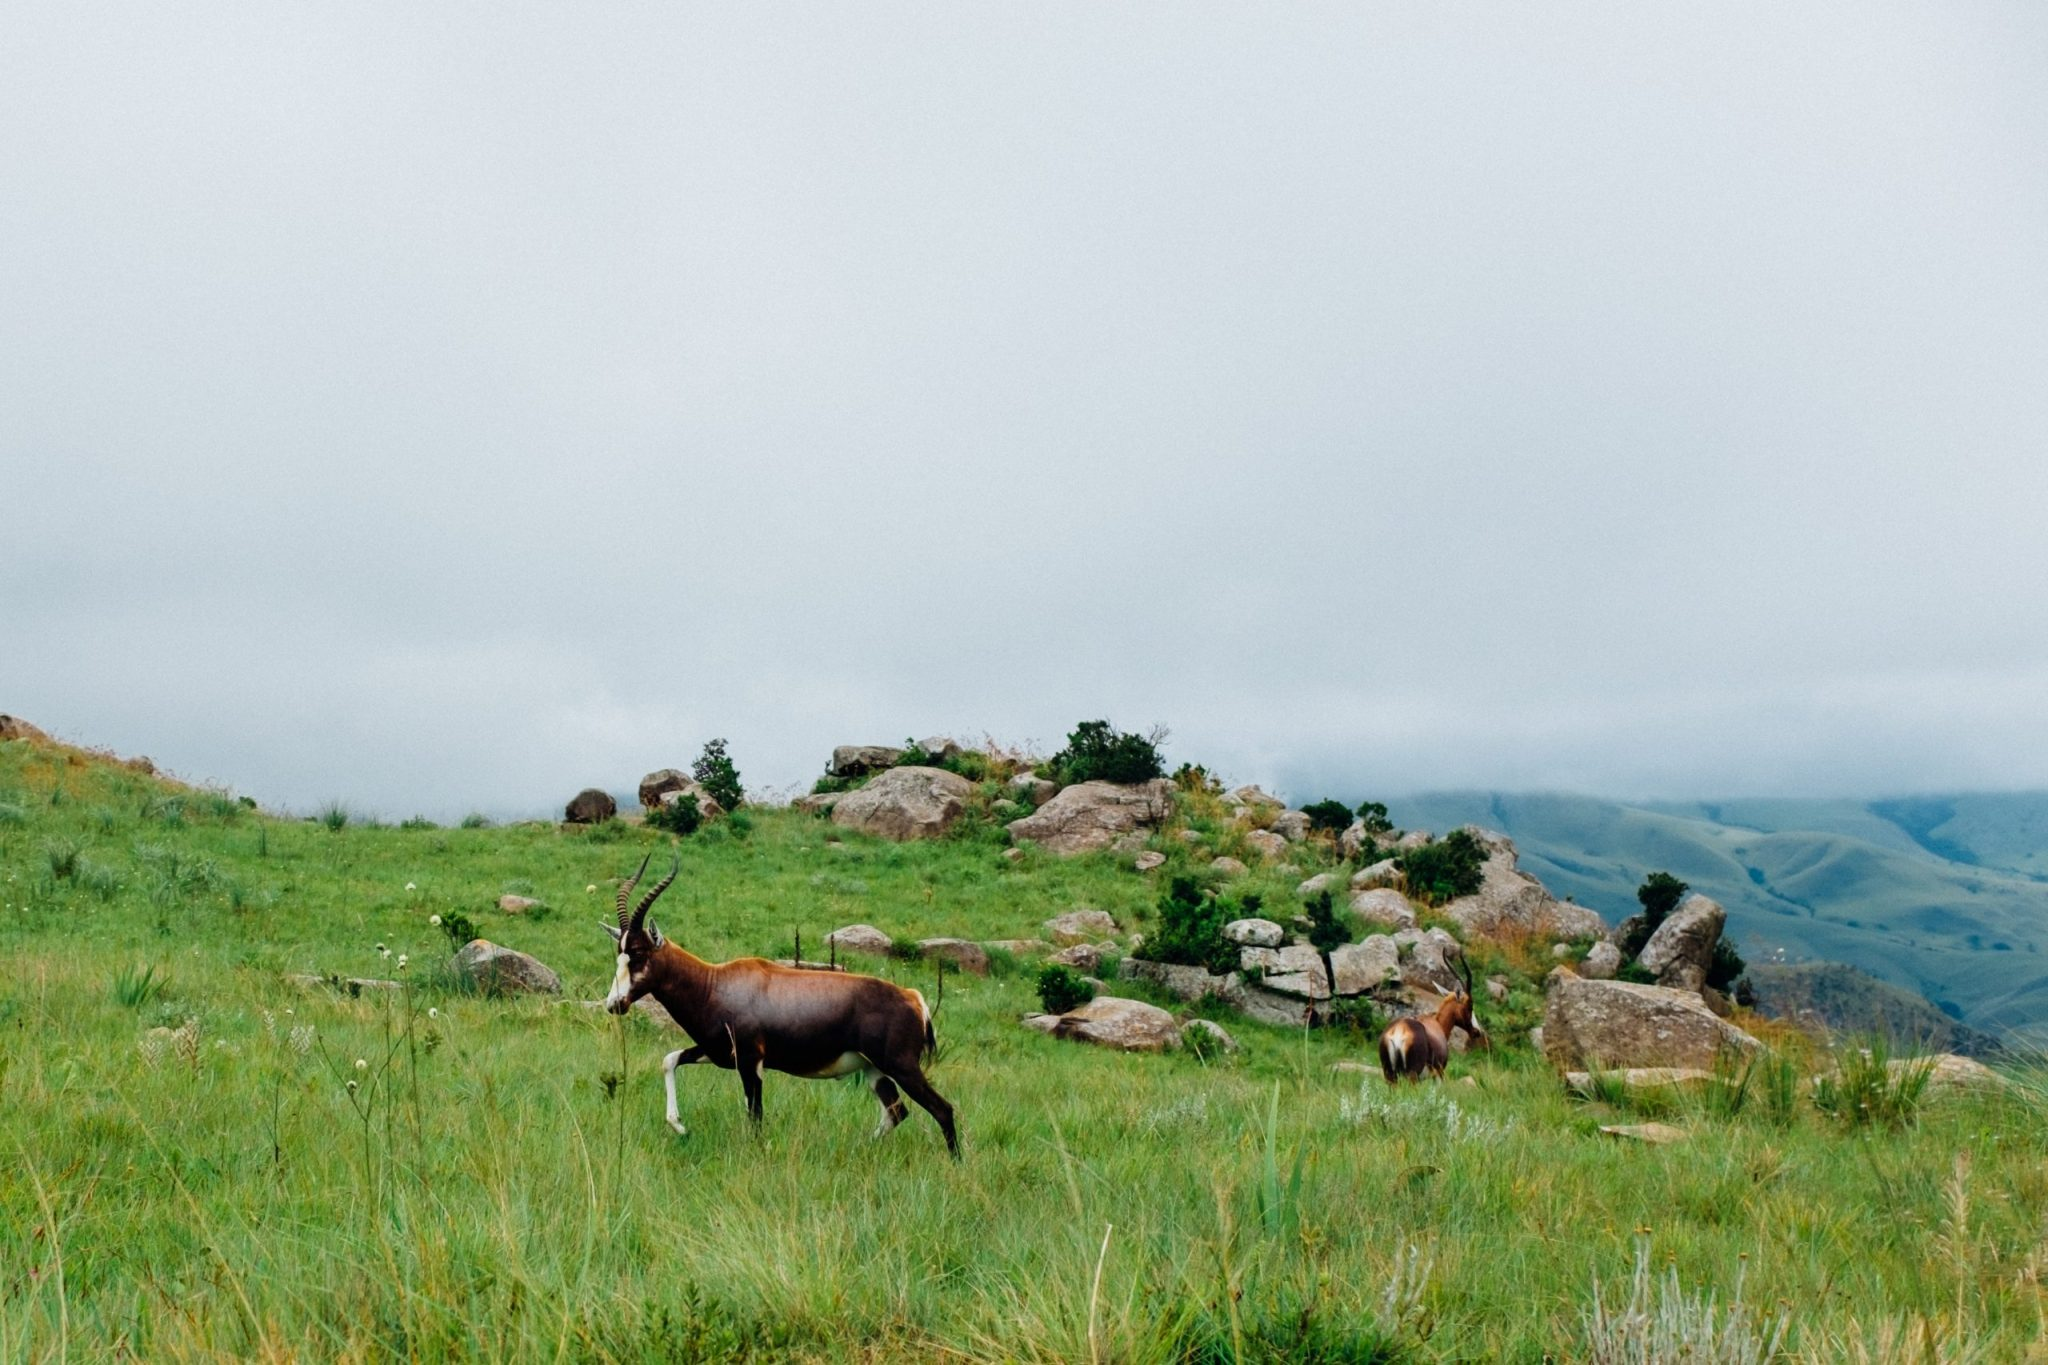 Antelope in Swaziland National Park